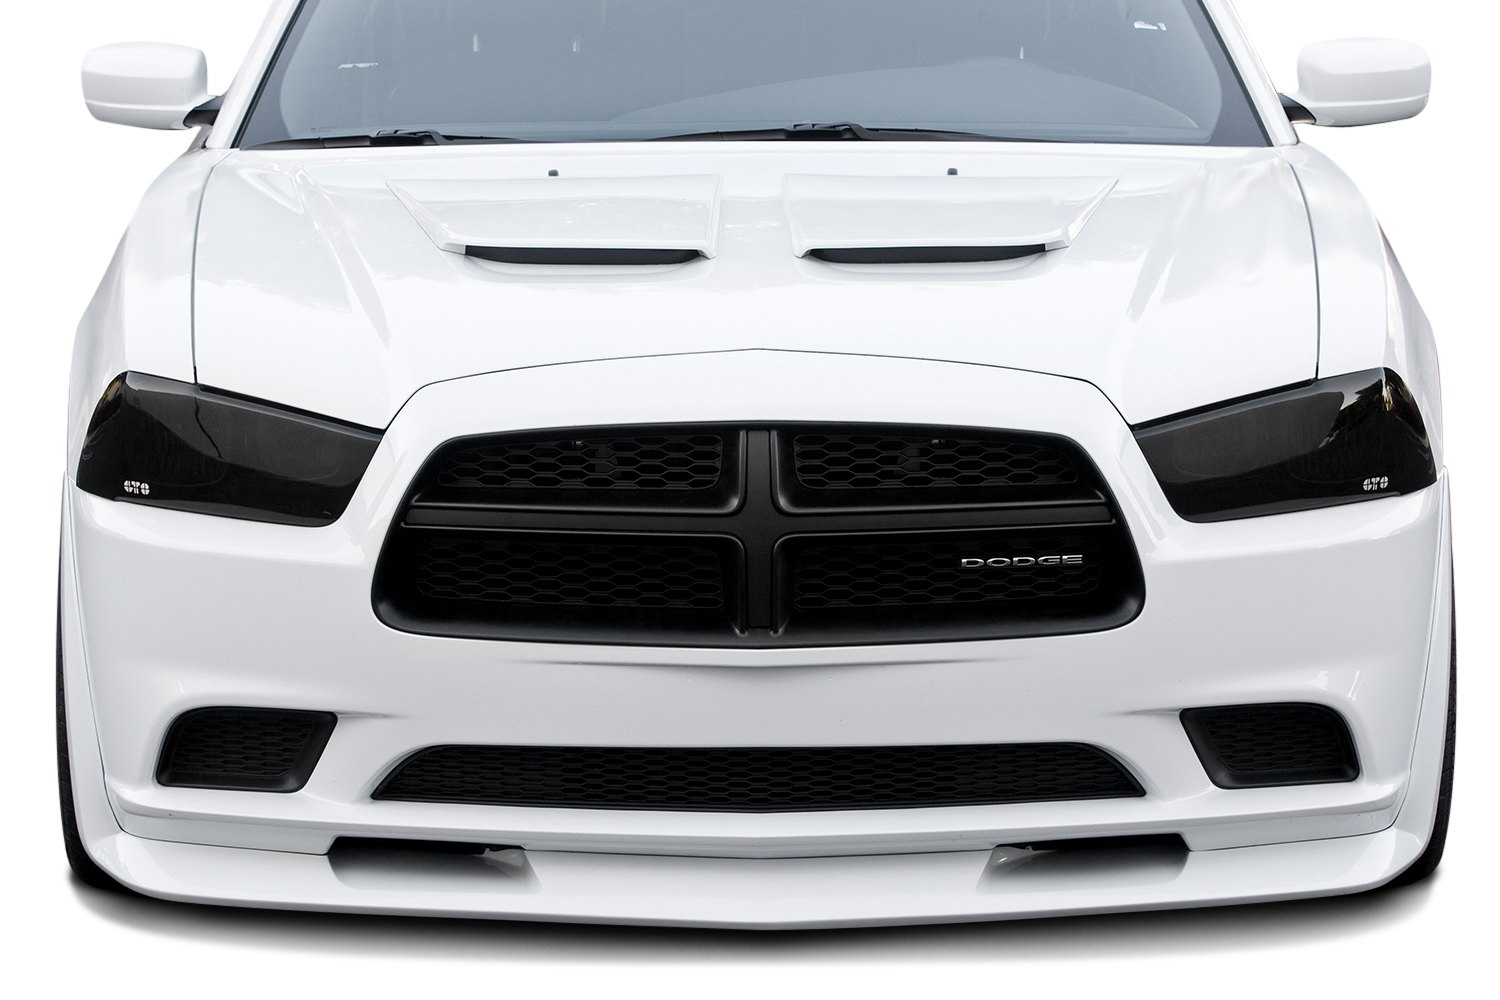 xenon body kit on dodge charger